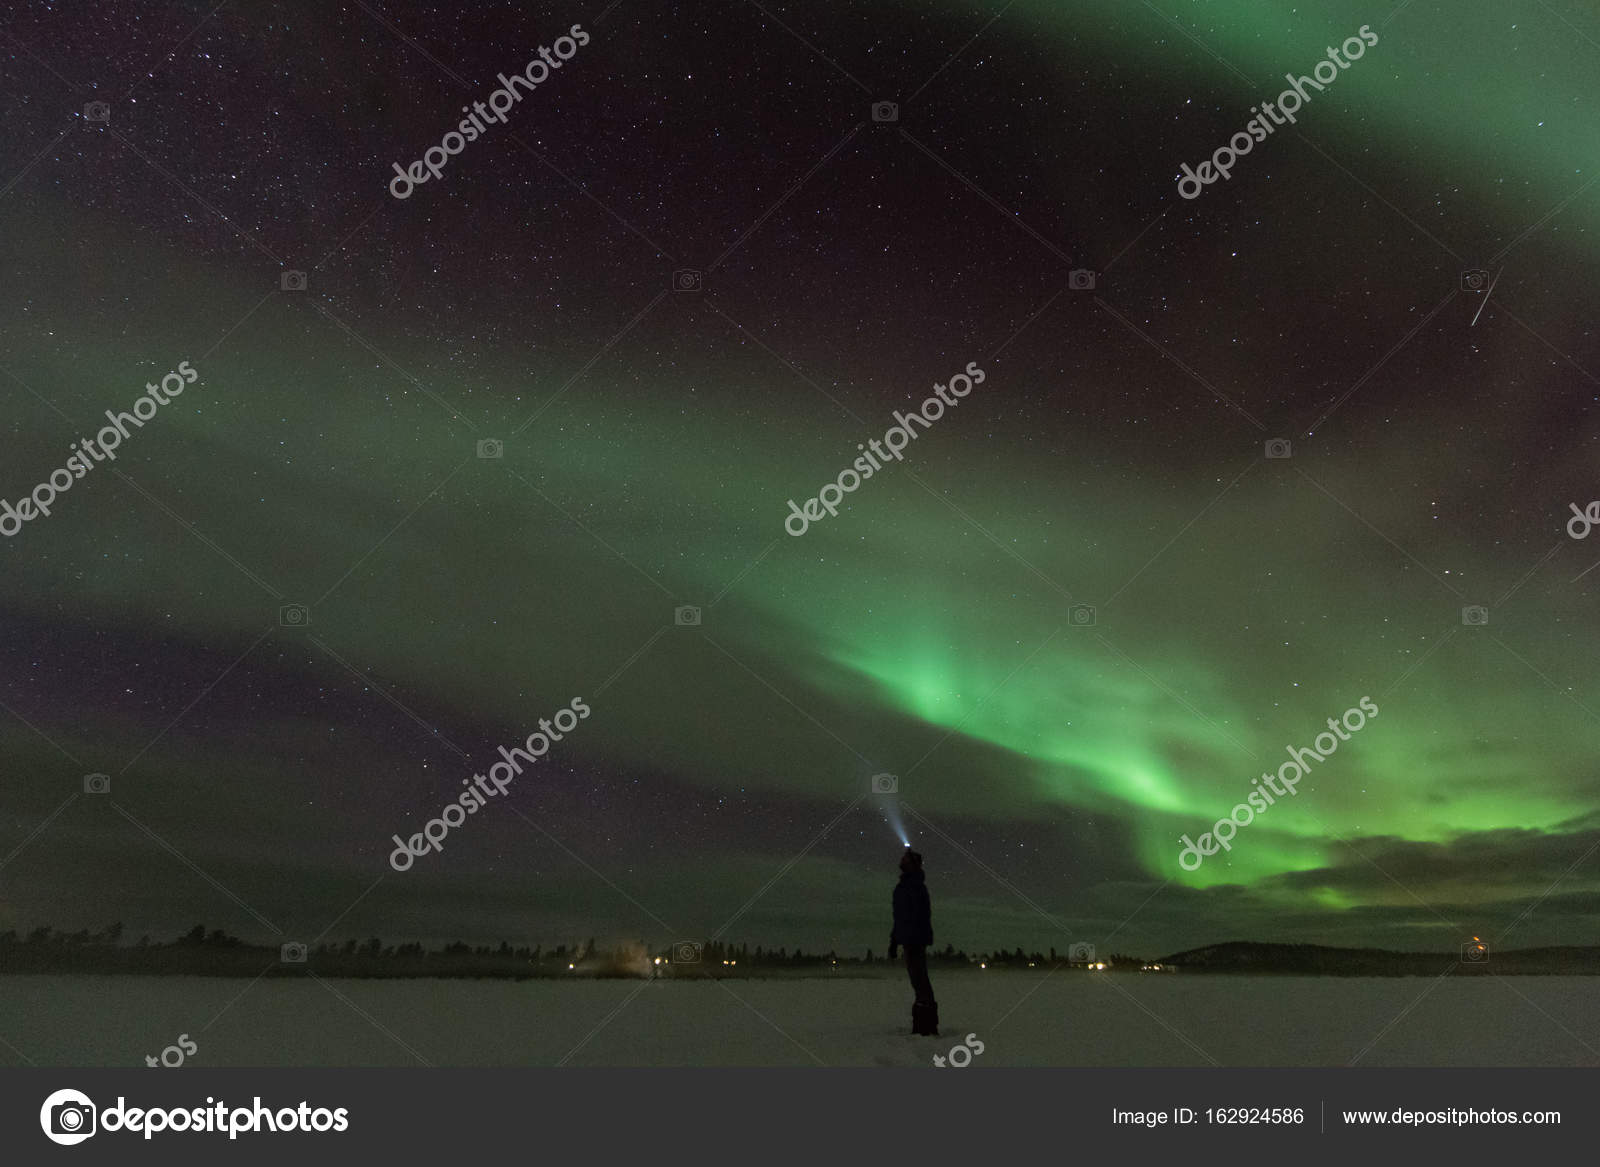 Night Shot Of Northern Lights In Frozen Winter Country U2014 Stock Photo